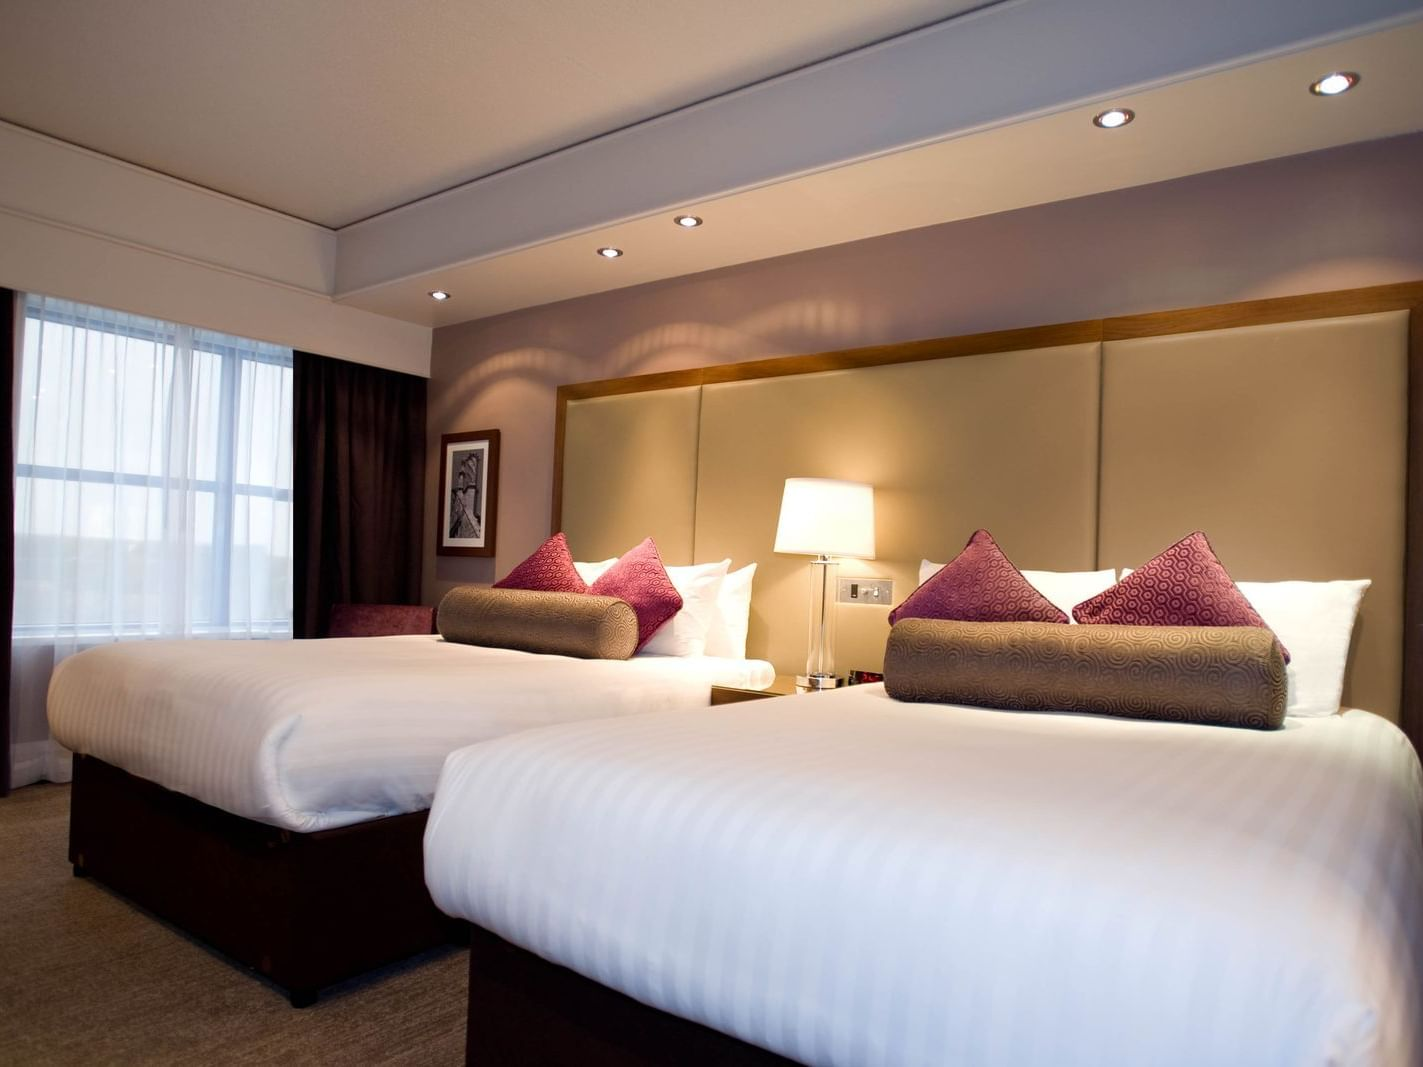 The Two Double Beds Room at Sandman Signature London Gatwick Hotel with two double beds (with premium pillow-top) and lamp shade between the beds